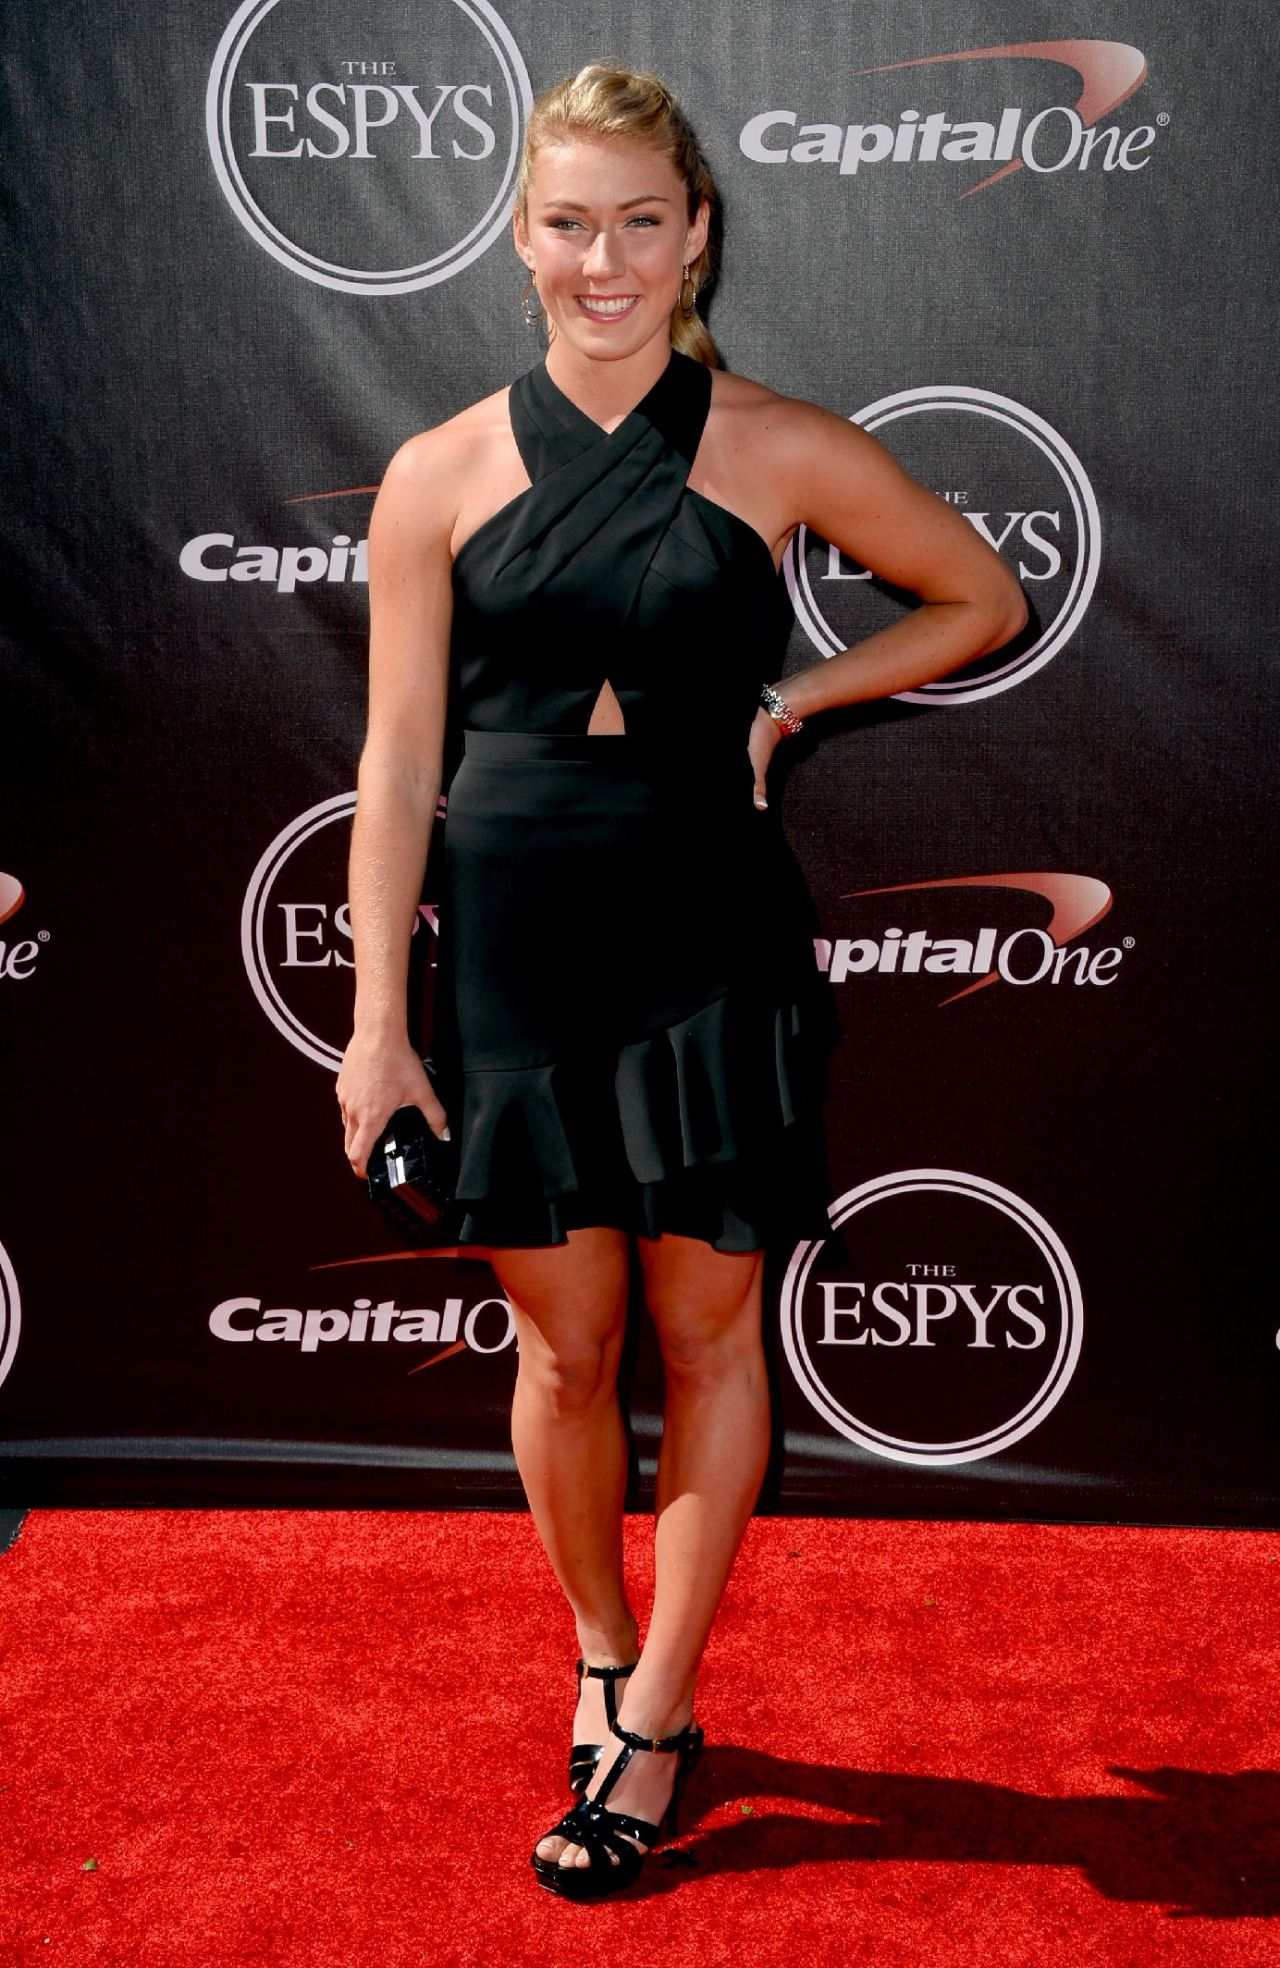 Mikaela Shiffrin  Espy Awards 2014-1918